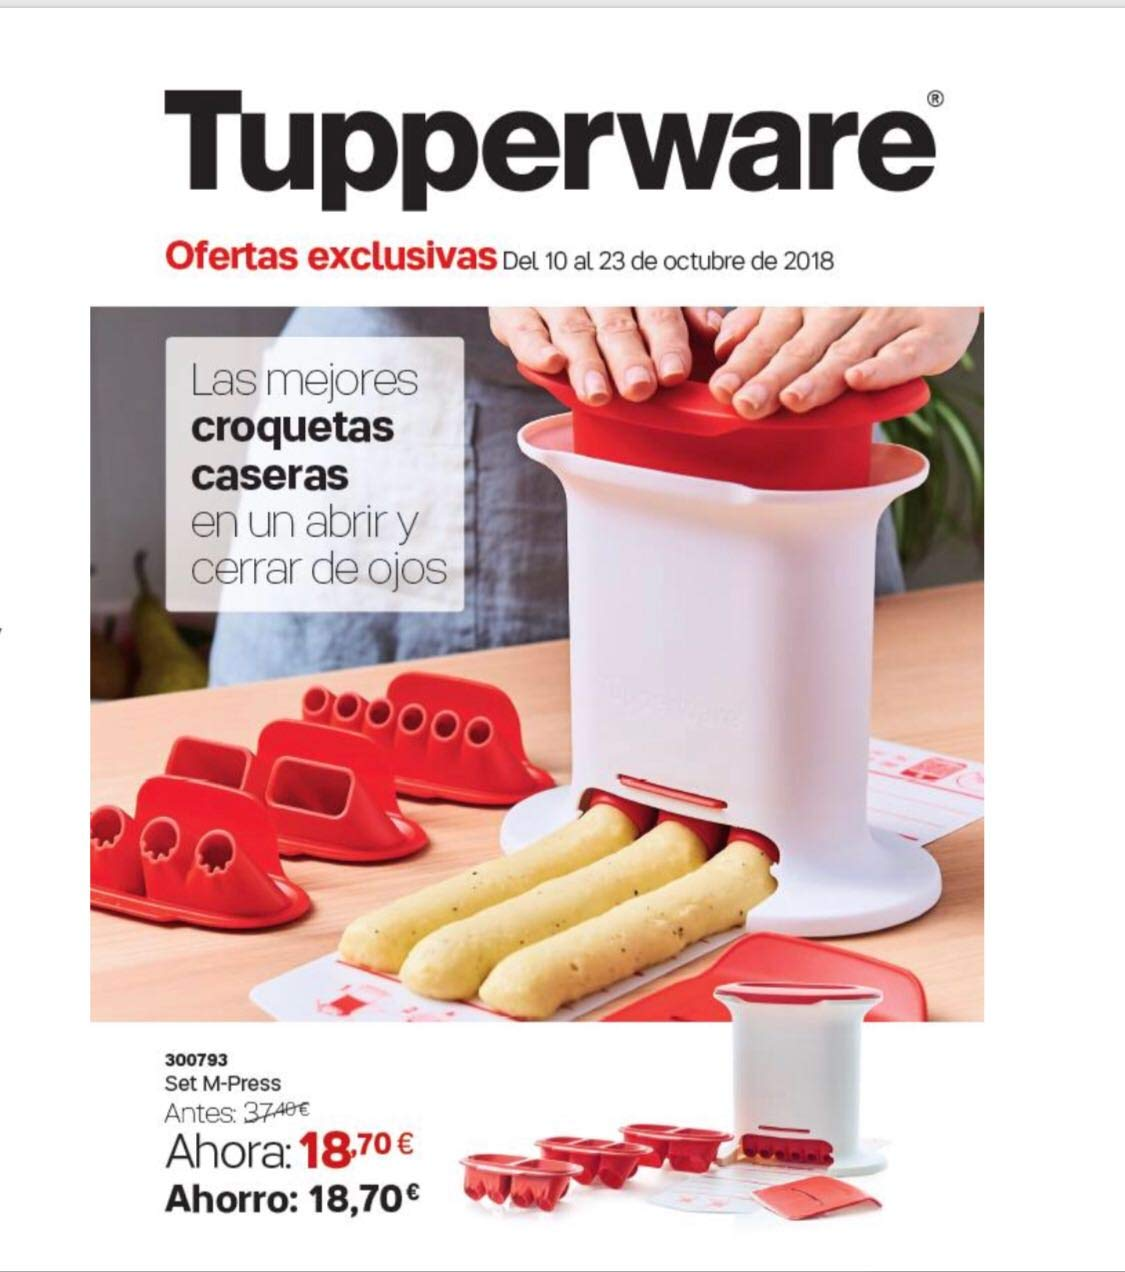 Tupperware gnocci Maker/gnocci Press (4 nozzles, White red) Tuperware tz765